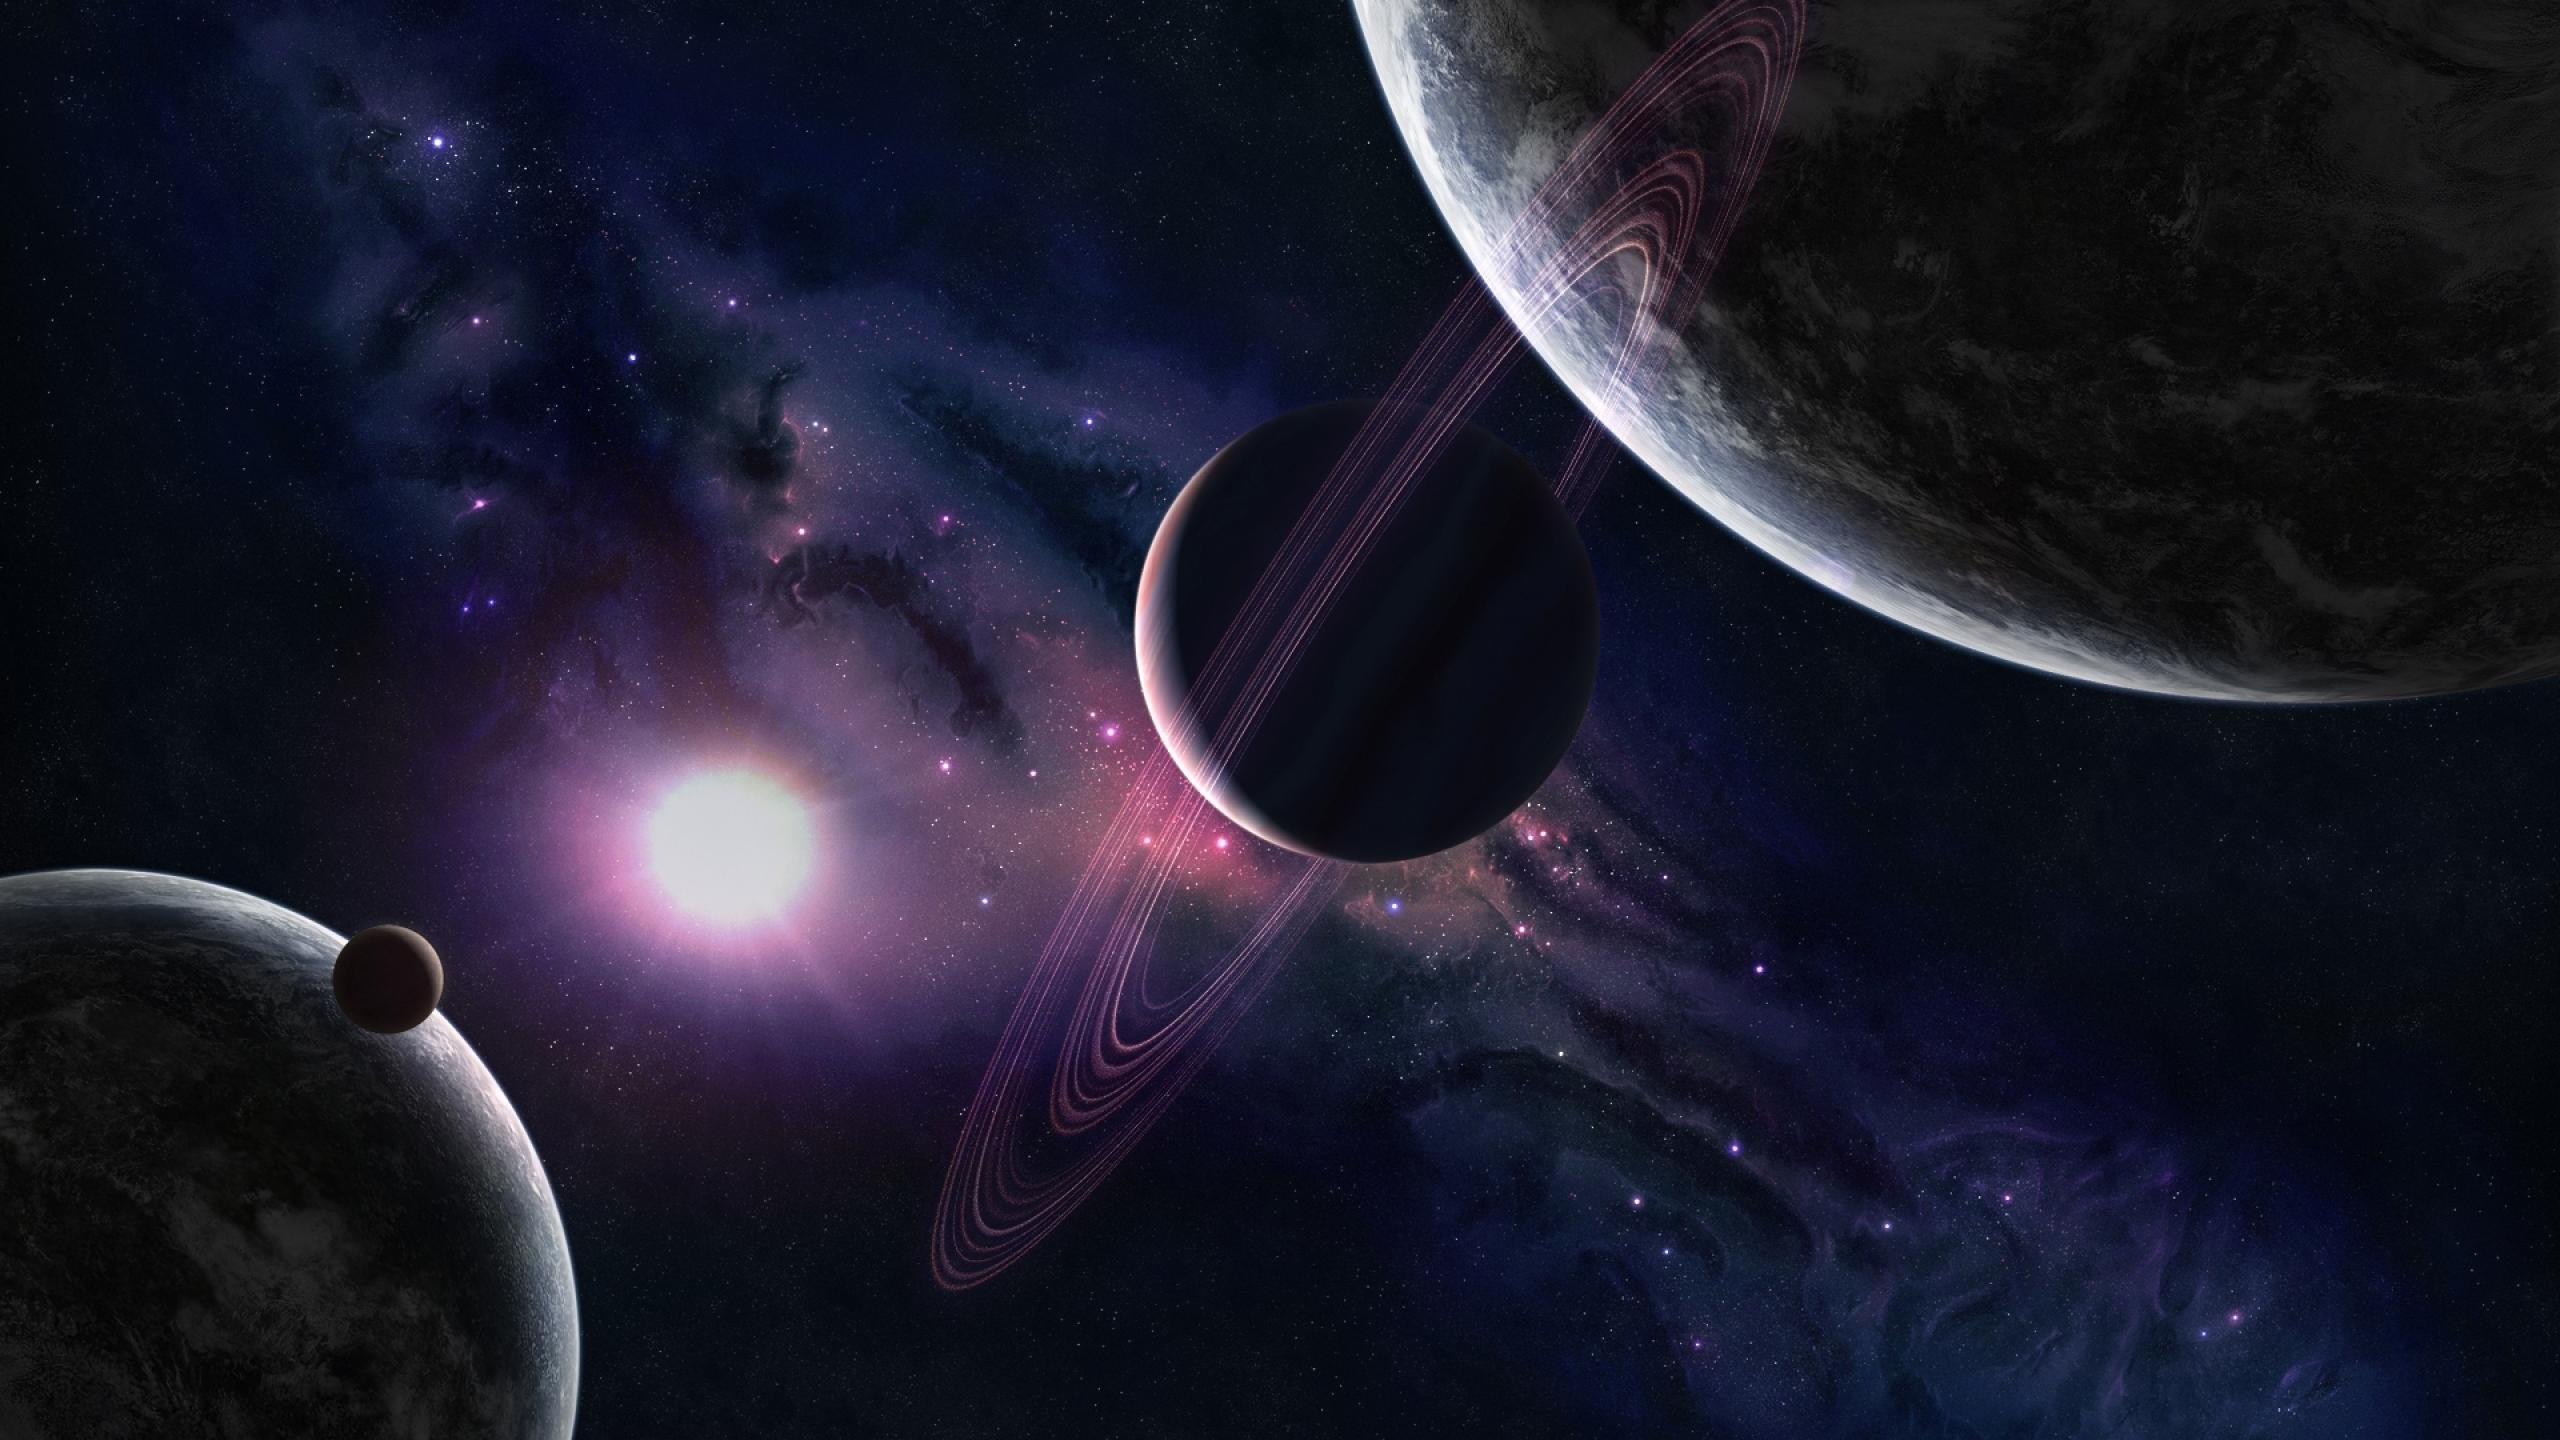 2560x1440 Solar System D Wallpaper Pro Android Apps on Google Play 1920×1080 Wallpapers  Solar System